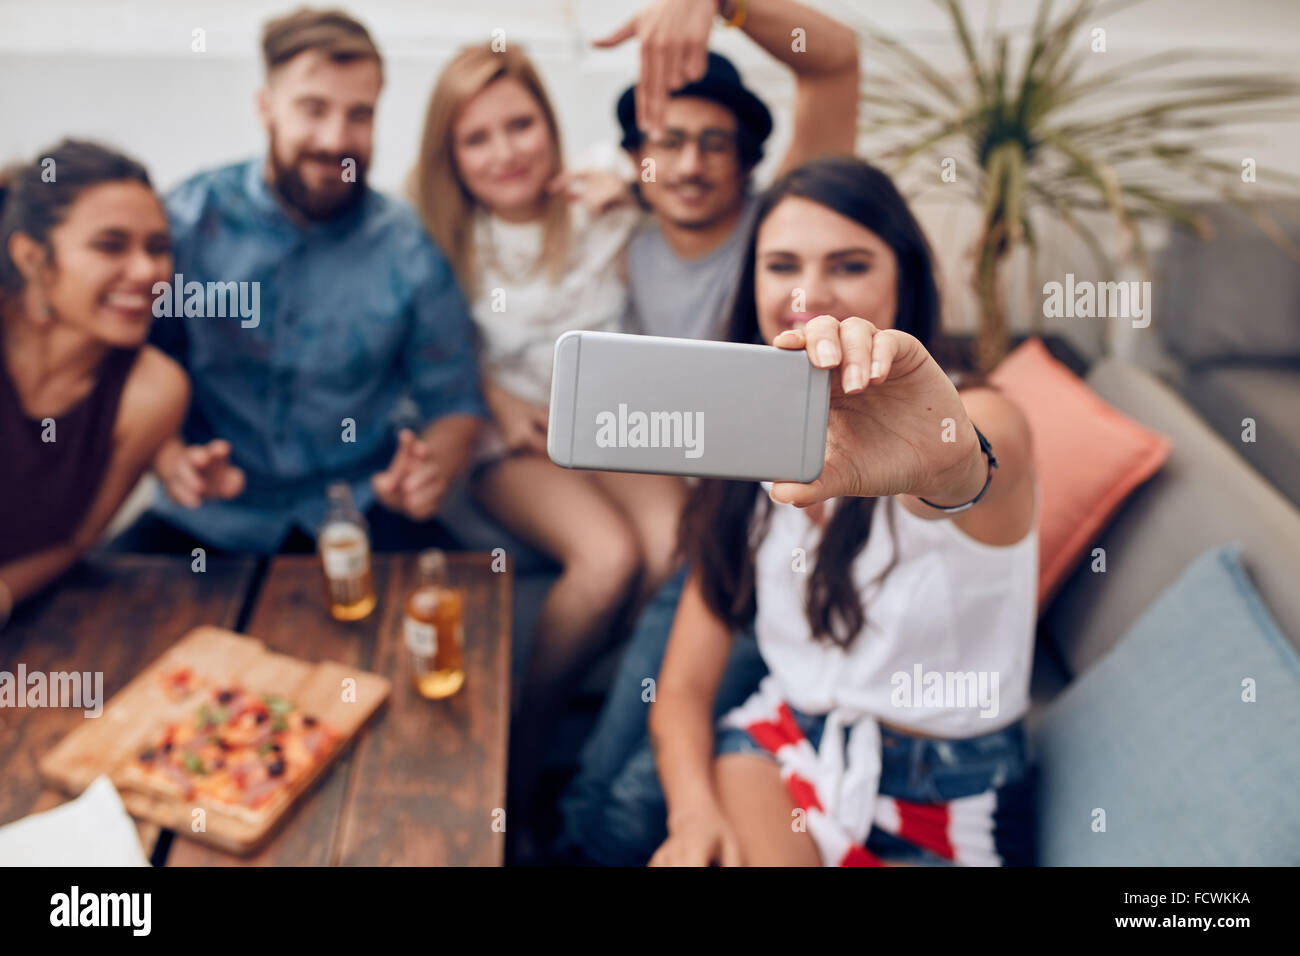 Young friends in a party taking self portrait with smart phone. Focus on mobile phone in woman's hand. Group of Stock Photo